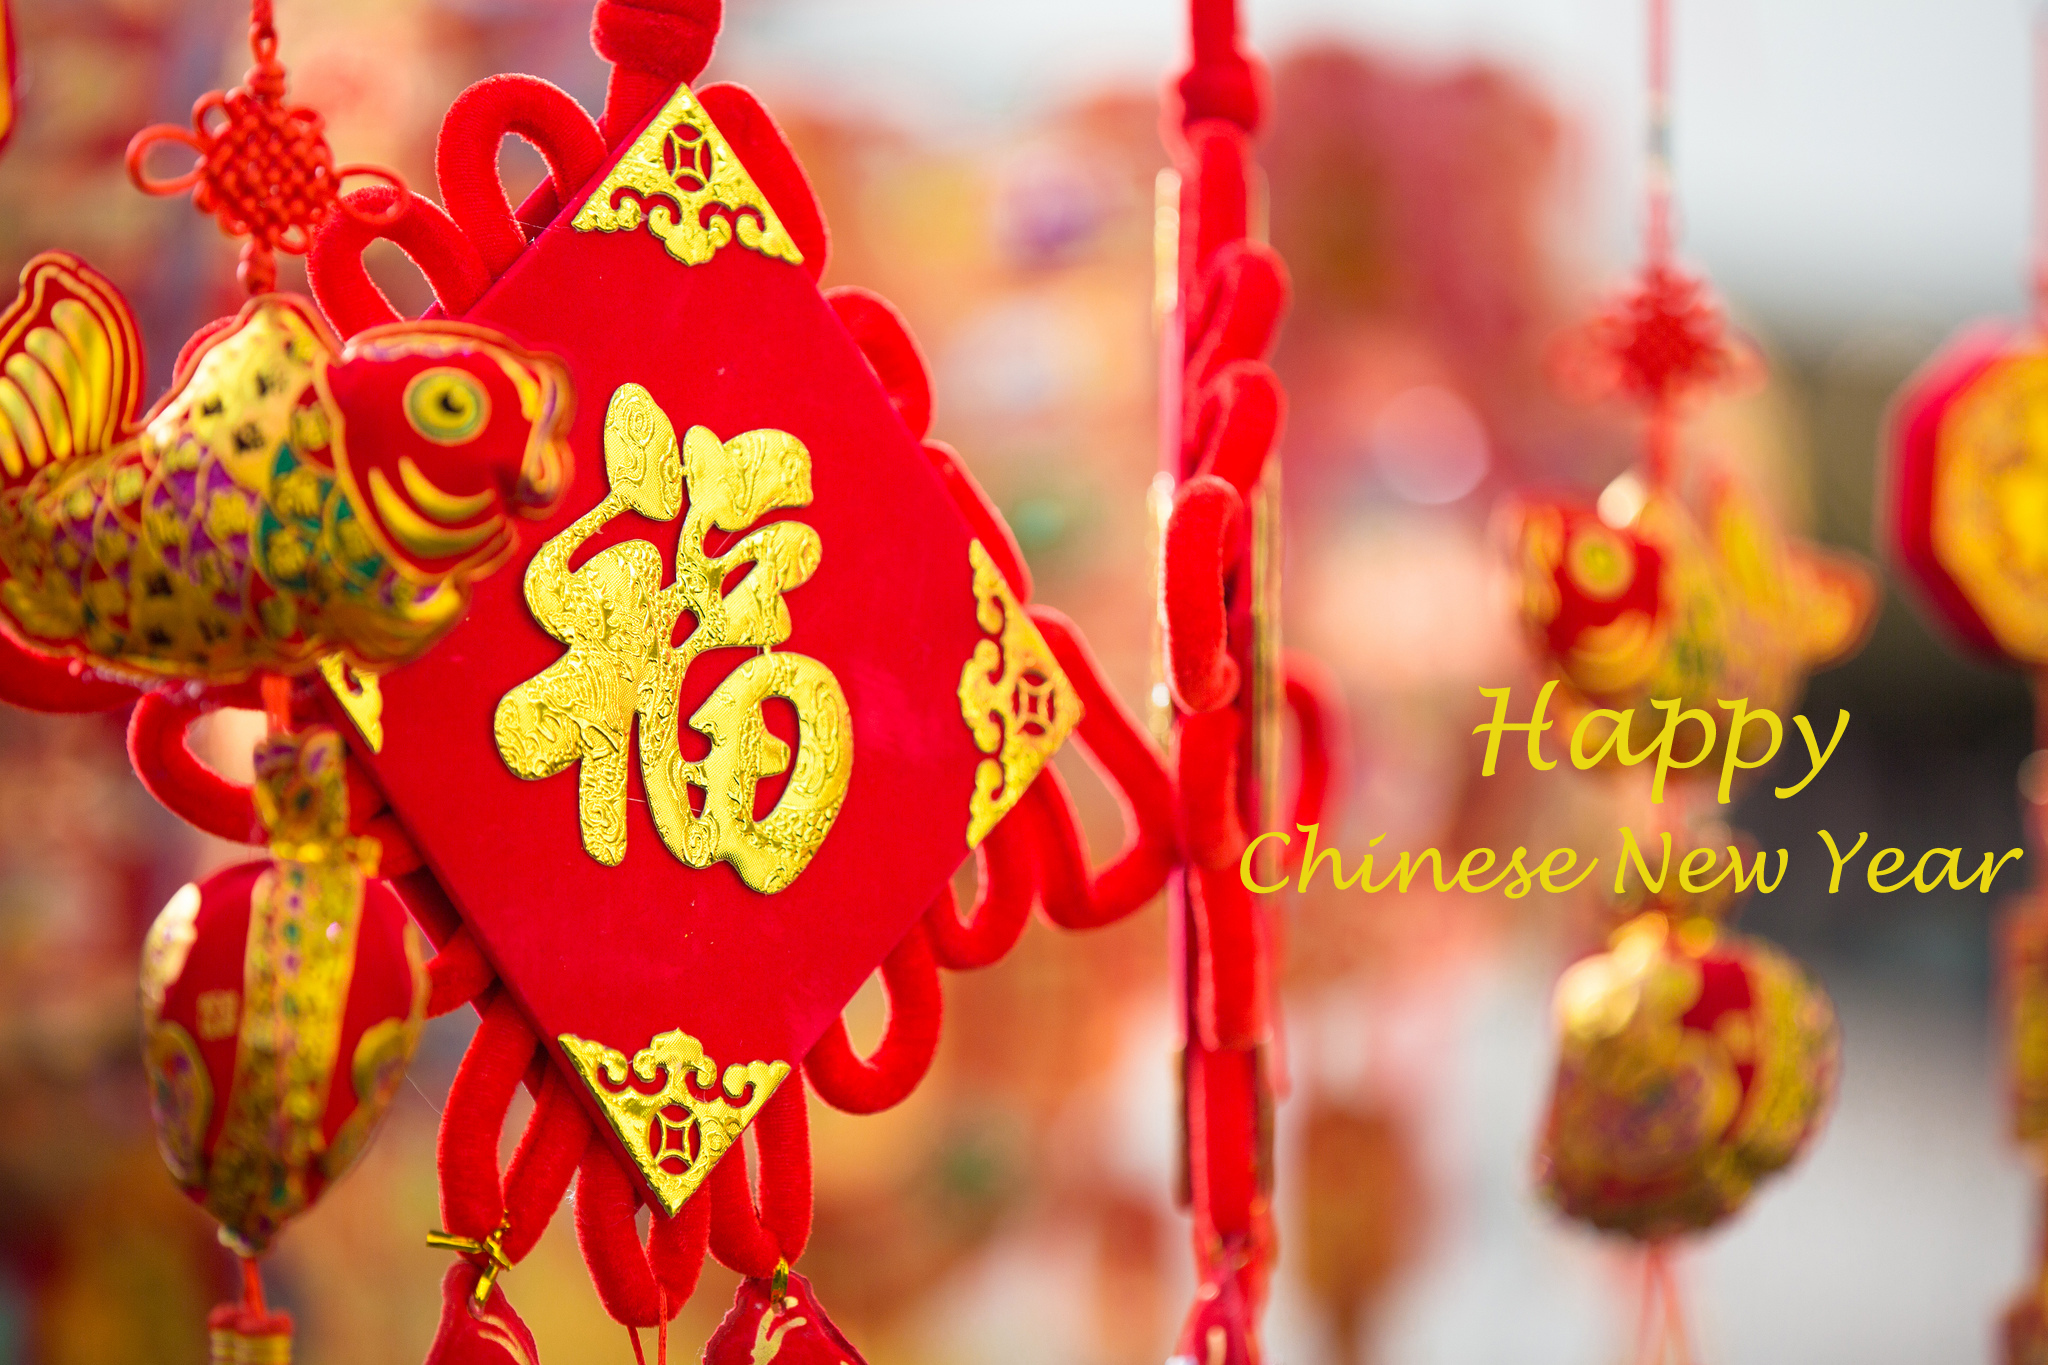 Chinese New Year Decorations for Wallpaper   HD Wallpapers 2048x1365